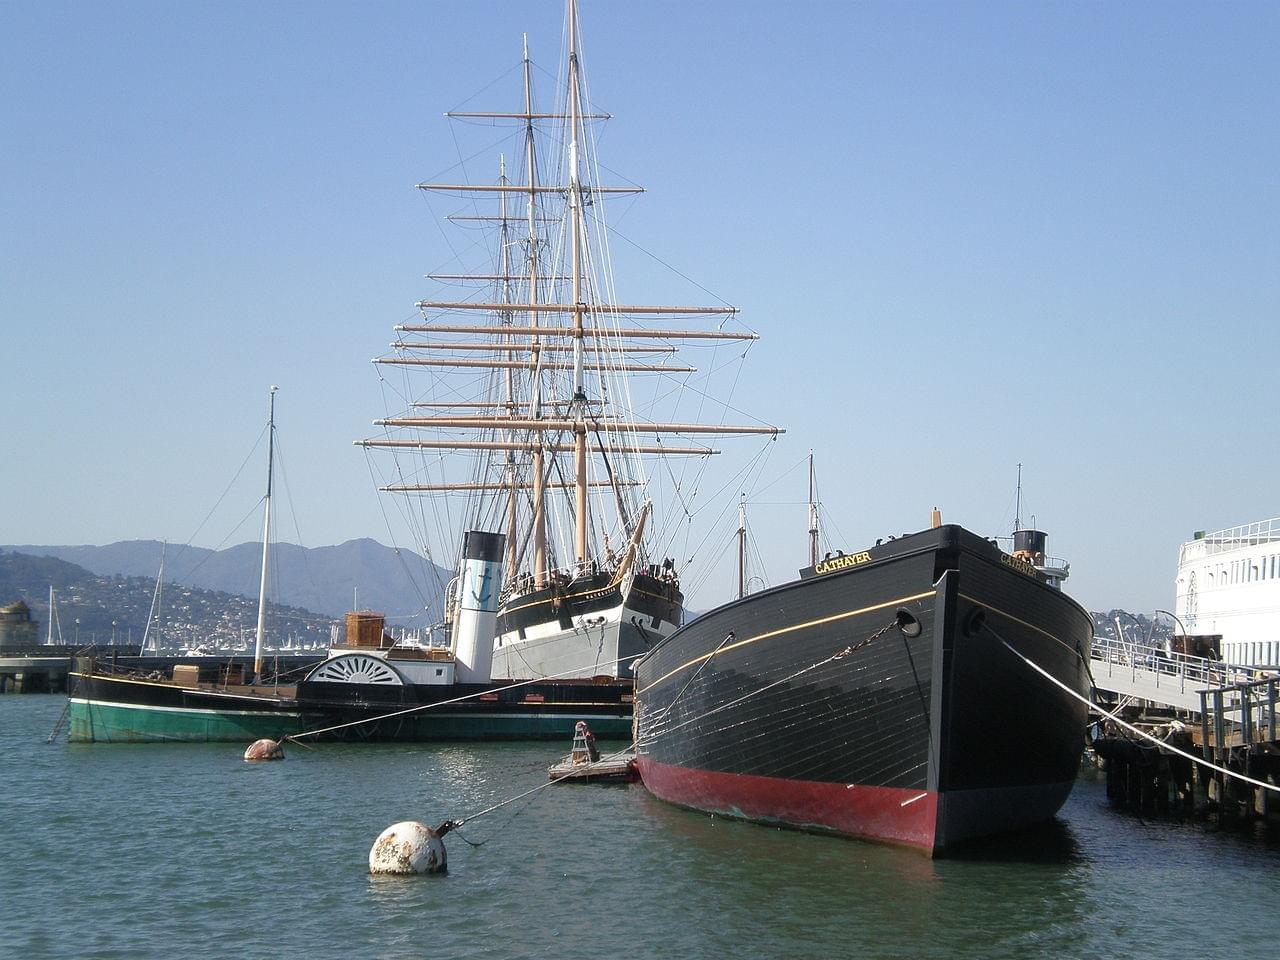 National Maritime Museum of San Francisco